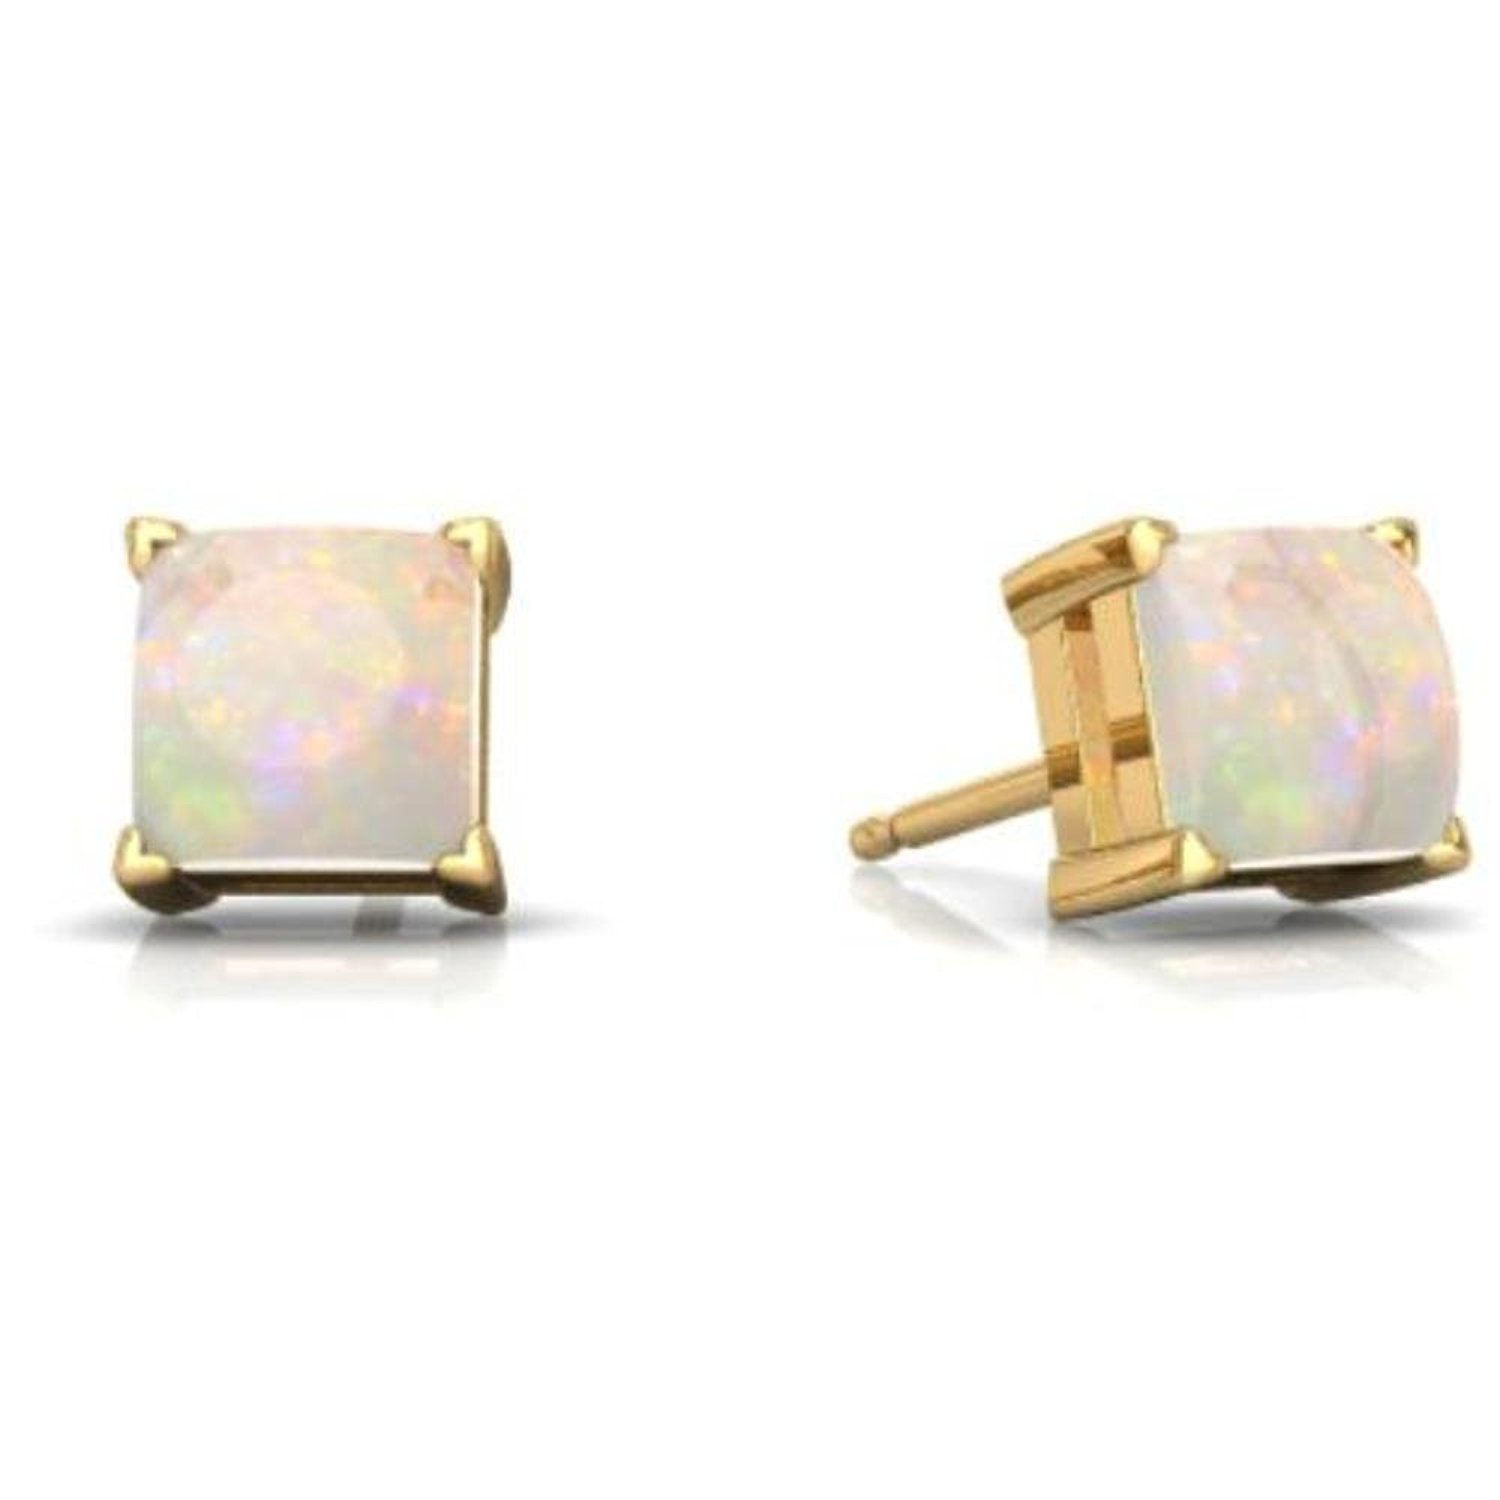 Simulated Opal Princess Cut Stud Earrings 14Kt Yellow Gold & Sterling Silver